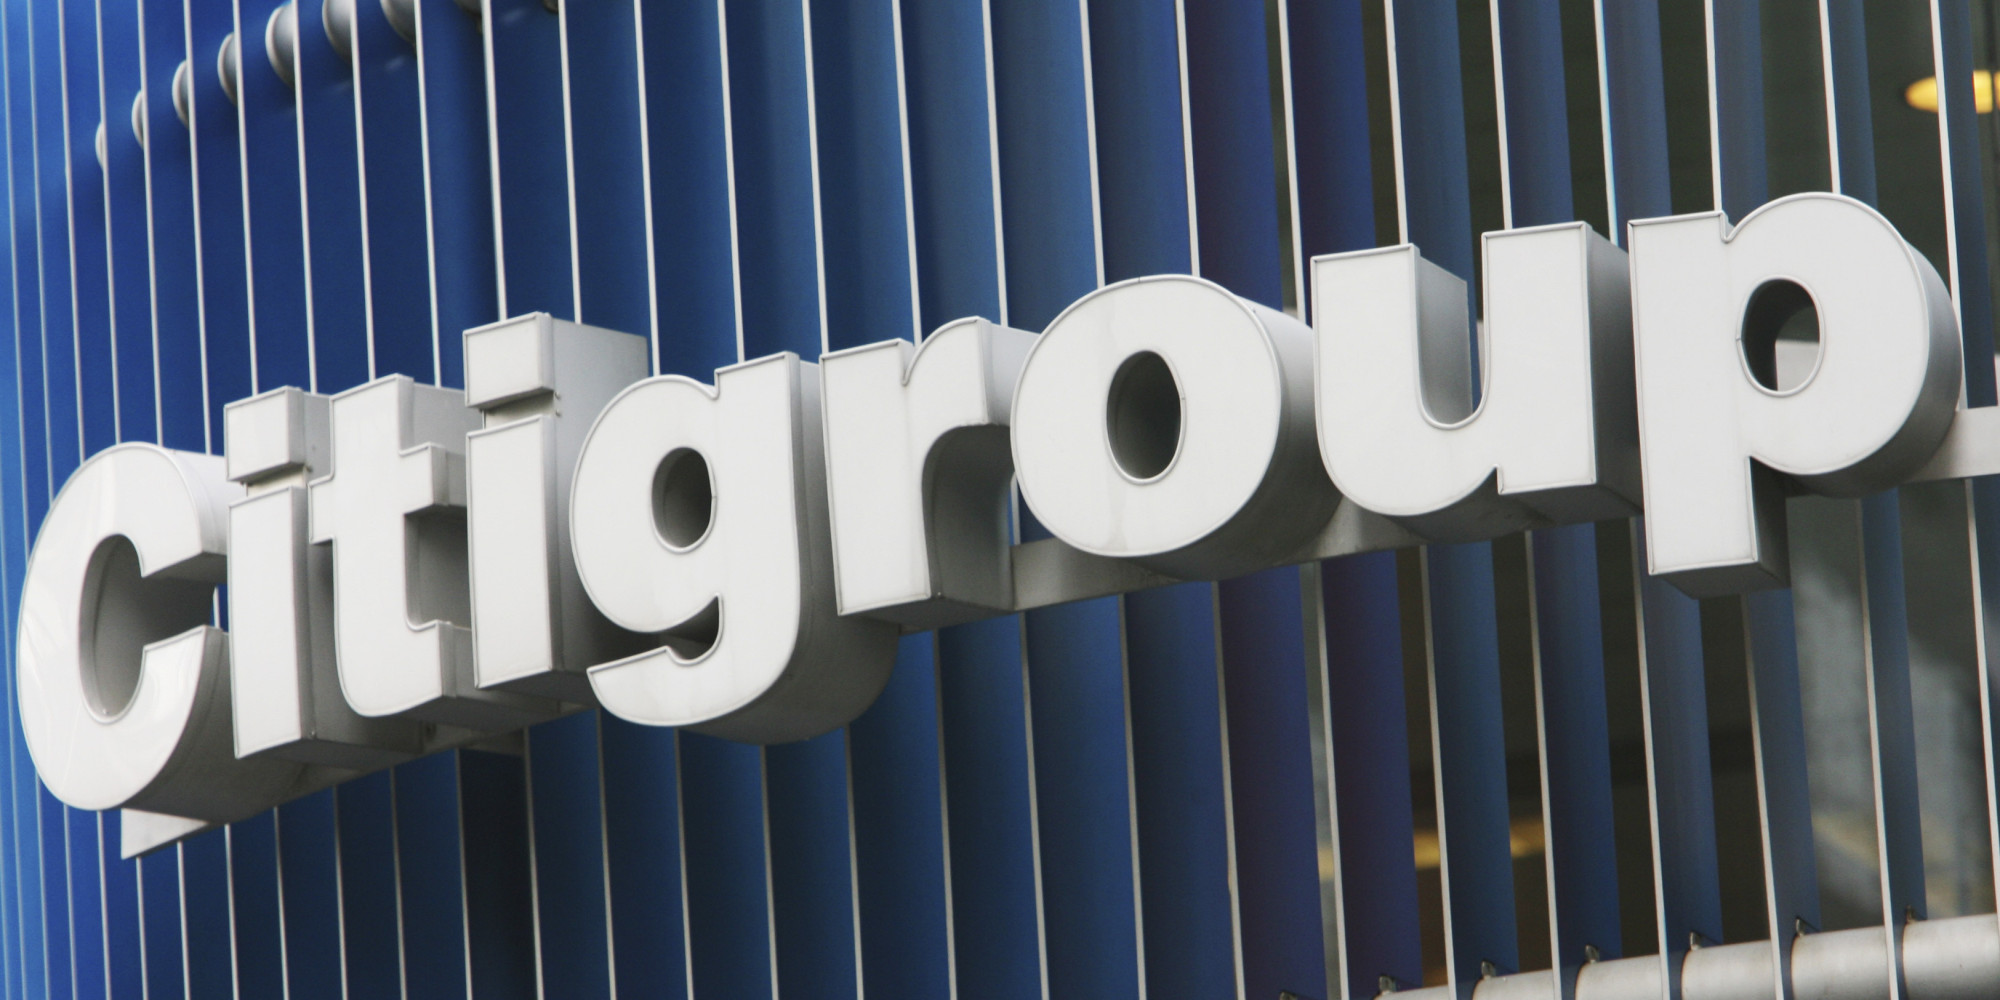 Citigroup Sued Over Billions In Mortgage Debt Losses